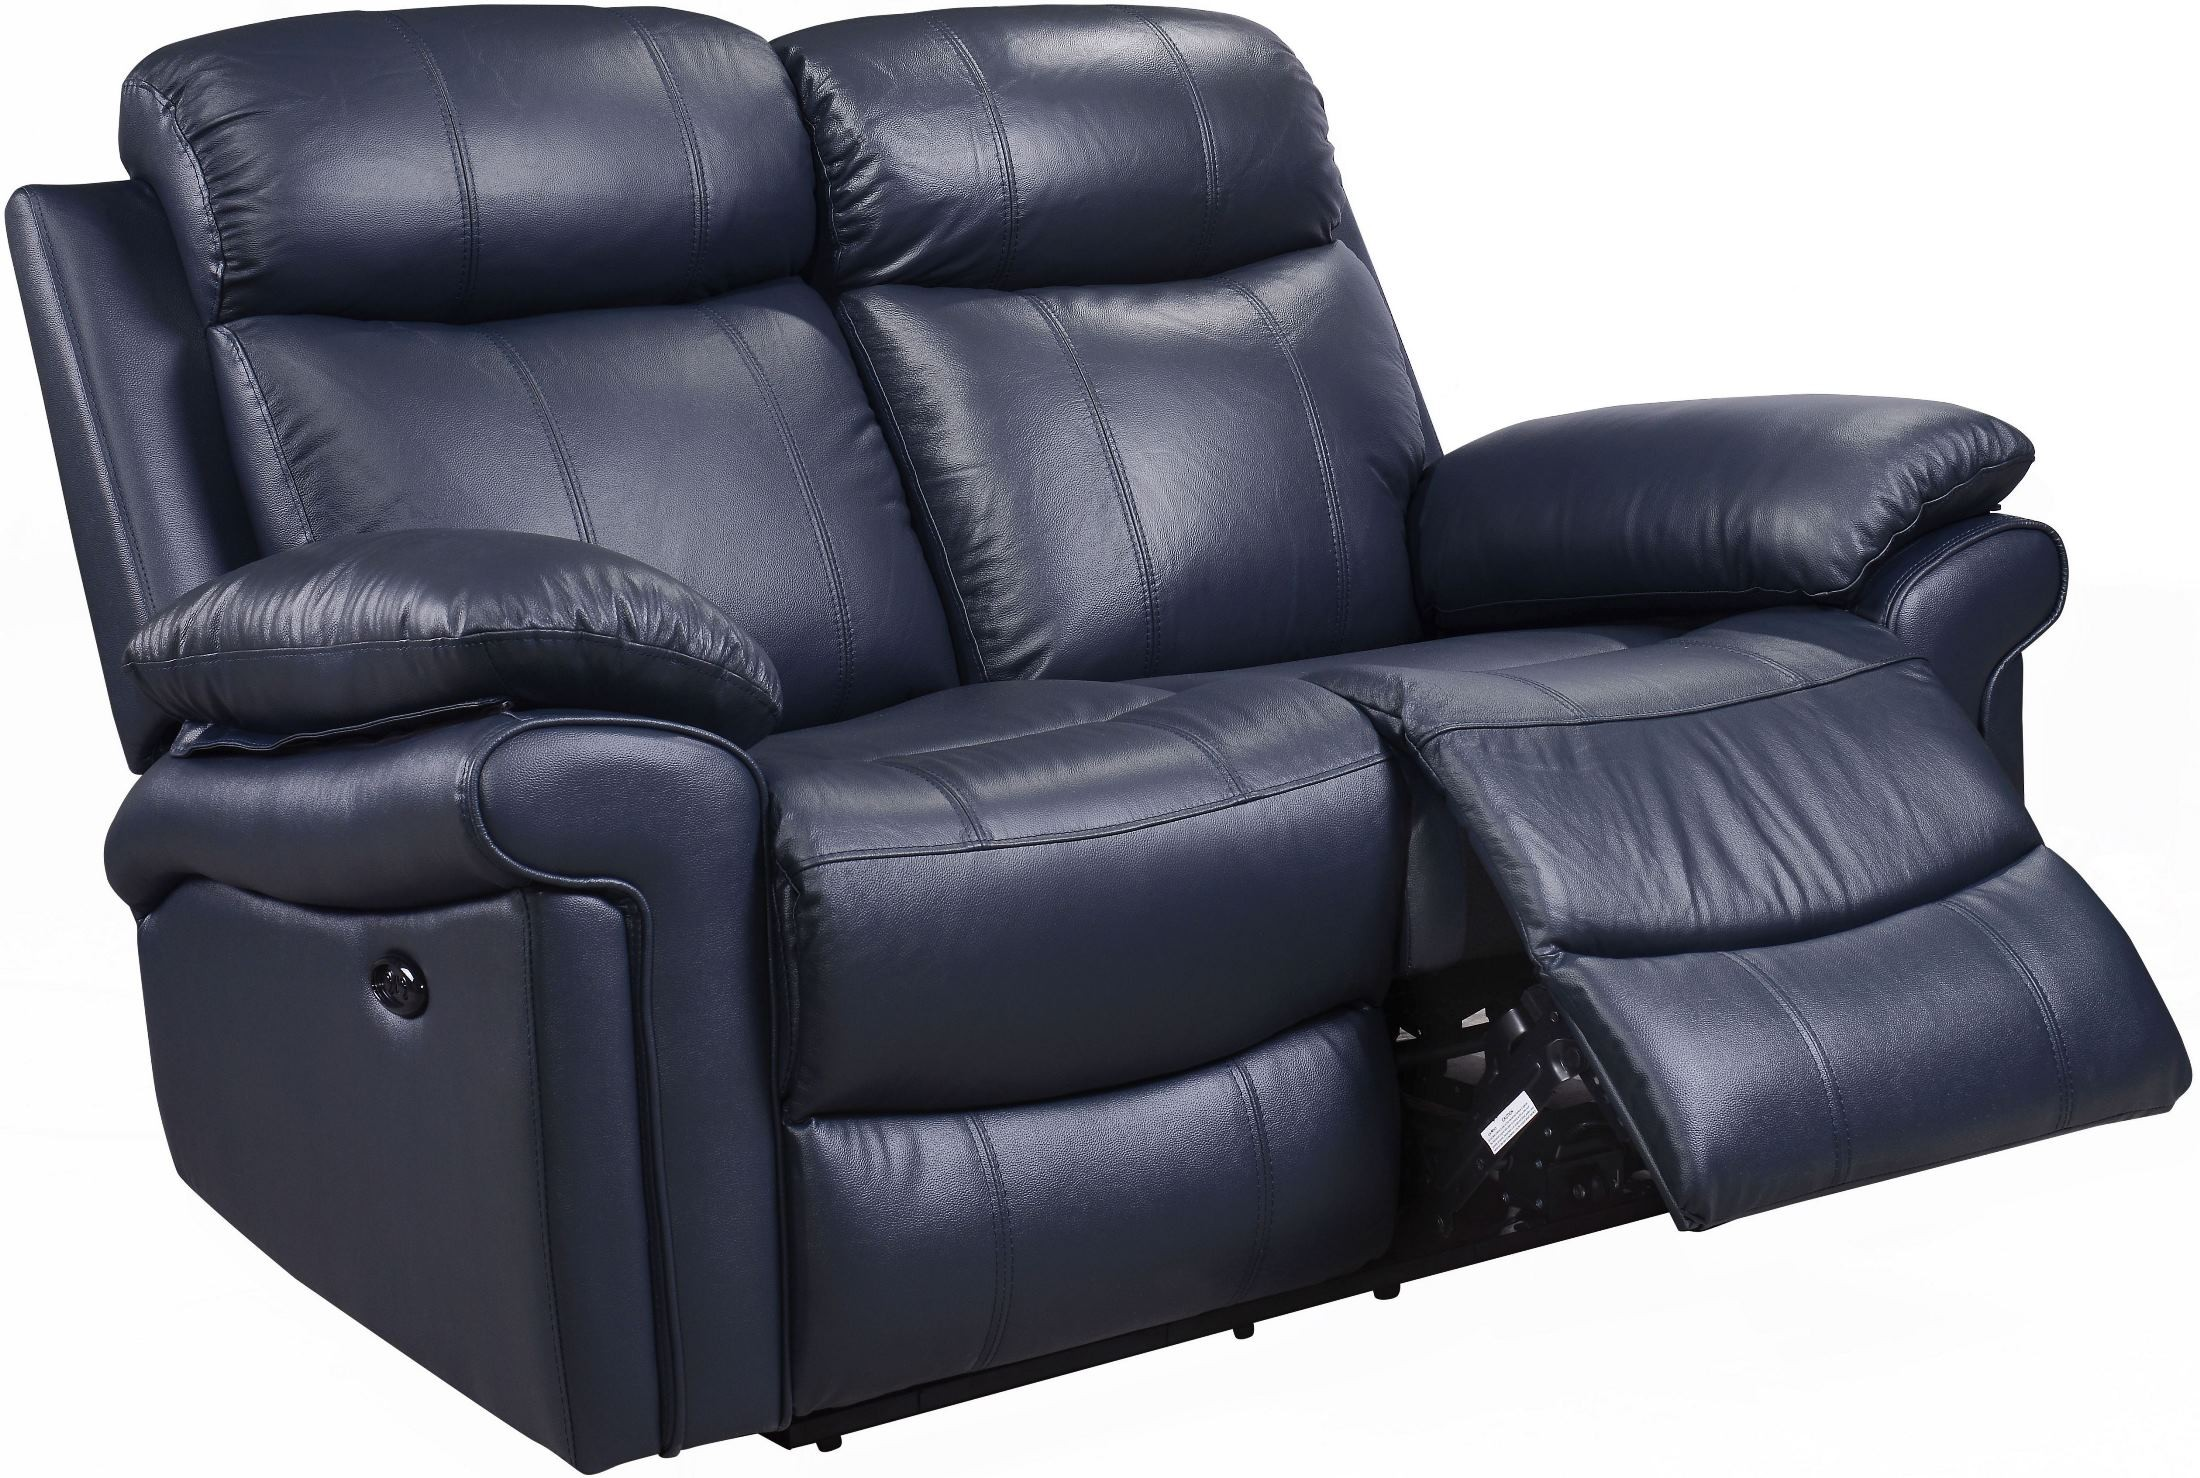 Shae Joplin Blue Leather Power Reclining Loveseat 1555 E2117 021041lv Leather Italia